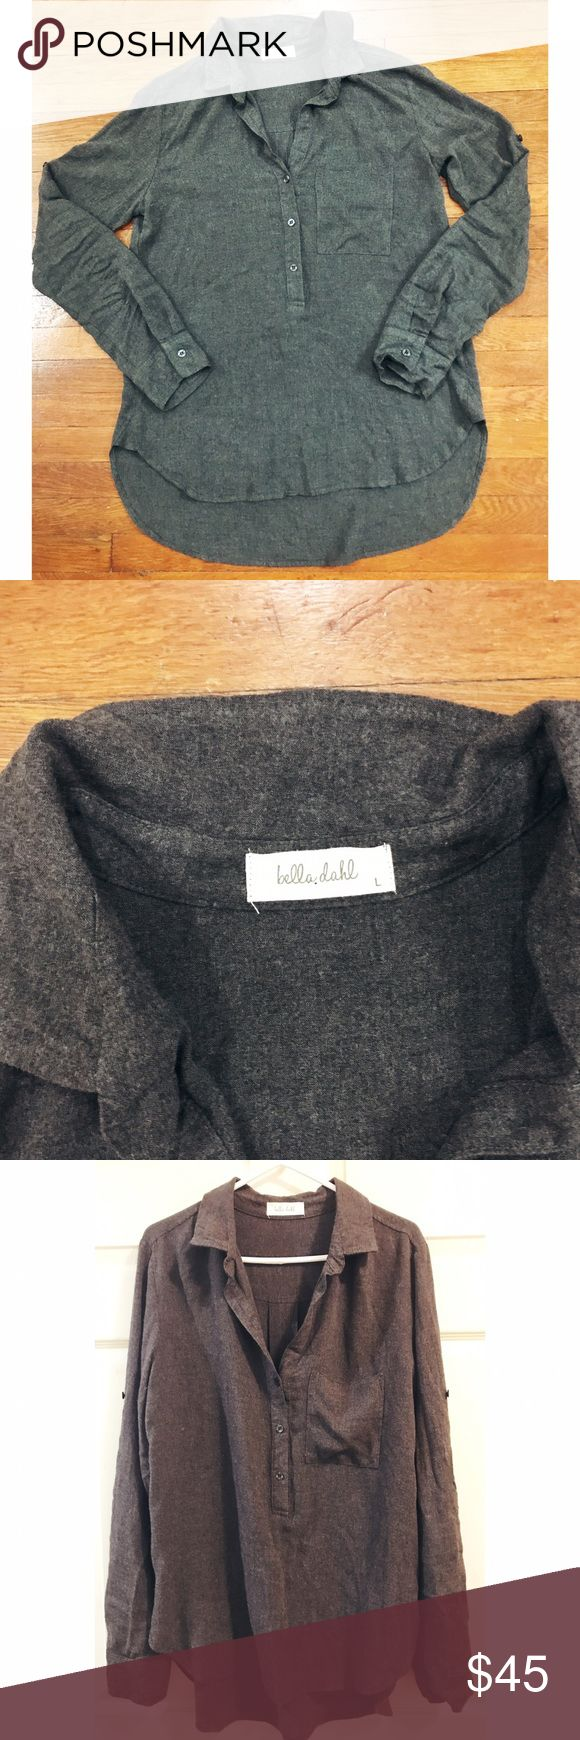 Bella Dahl • NWOT Flannel Tunic Bella Dahl • NWOT Flannel Tunic. Grey flannel-y material. Super soft! Oversized tunic with button front from the chest up. Size Large. Bella Dahl Tops Tunics